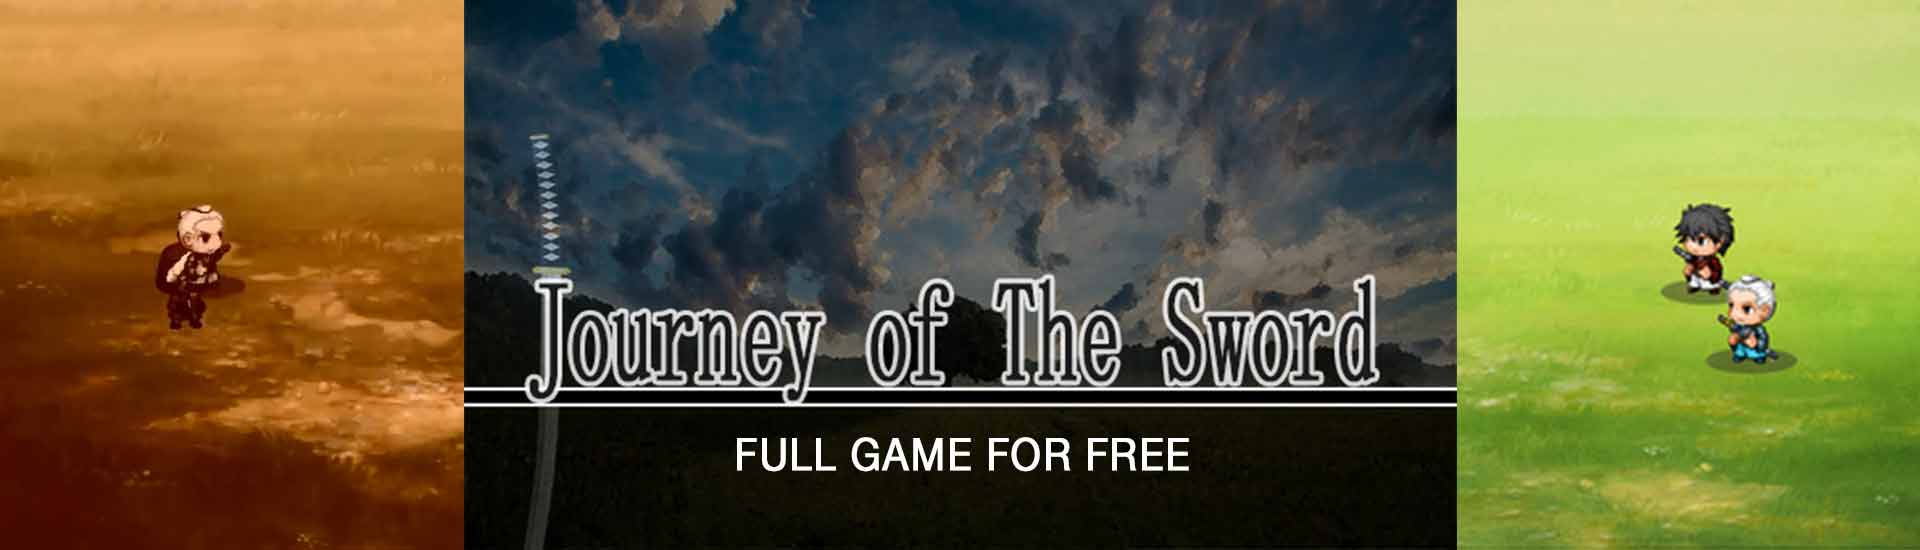 Journey of the Sword cover